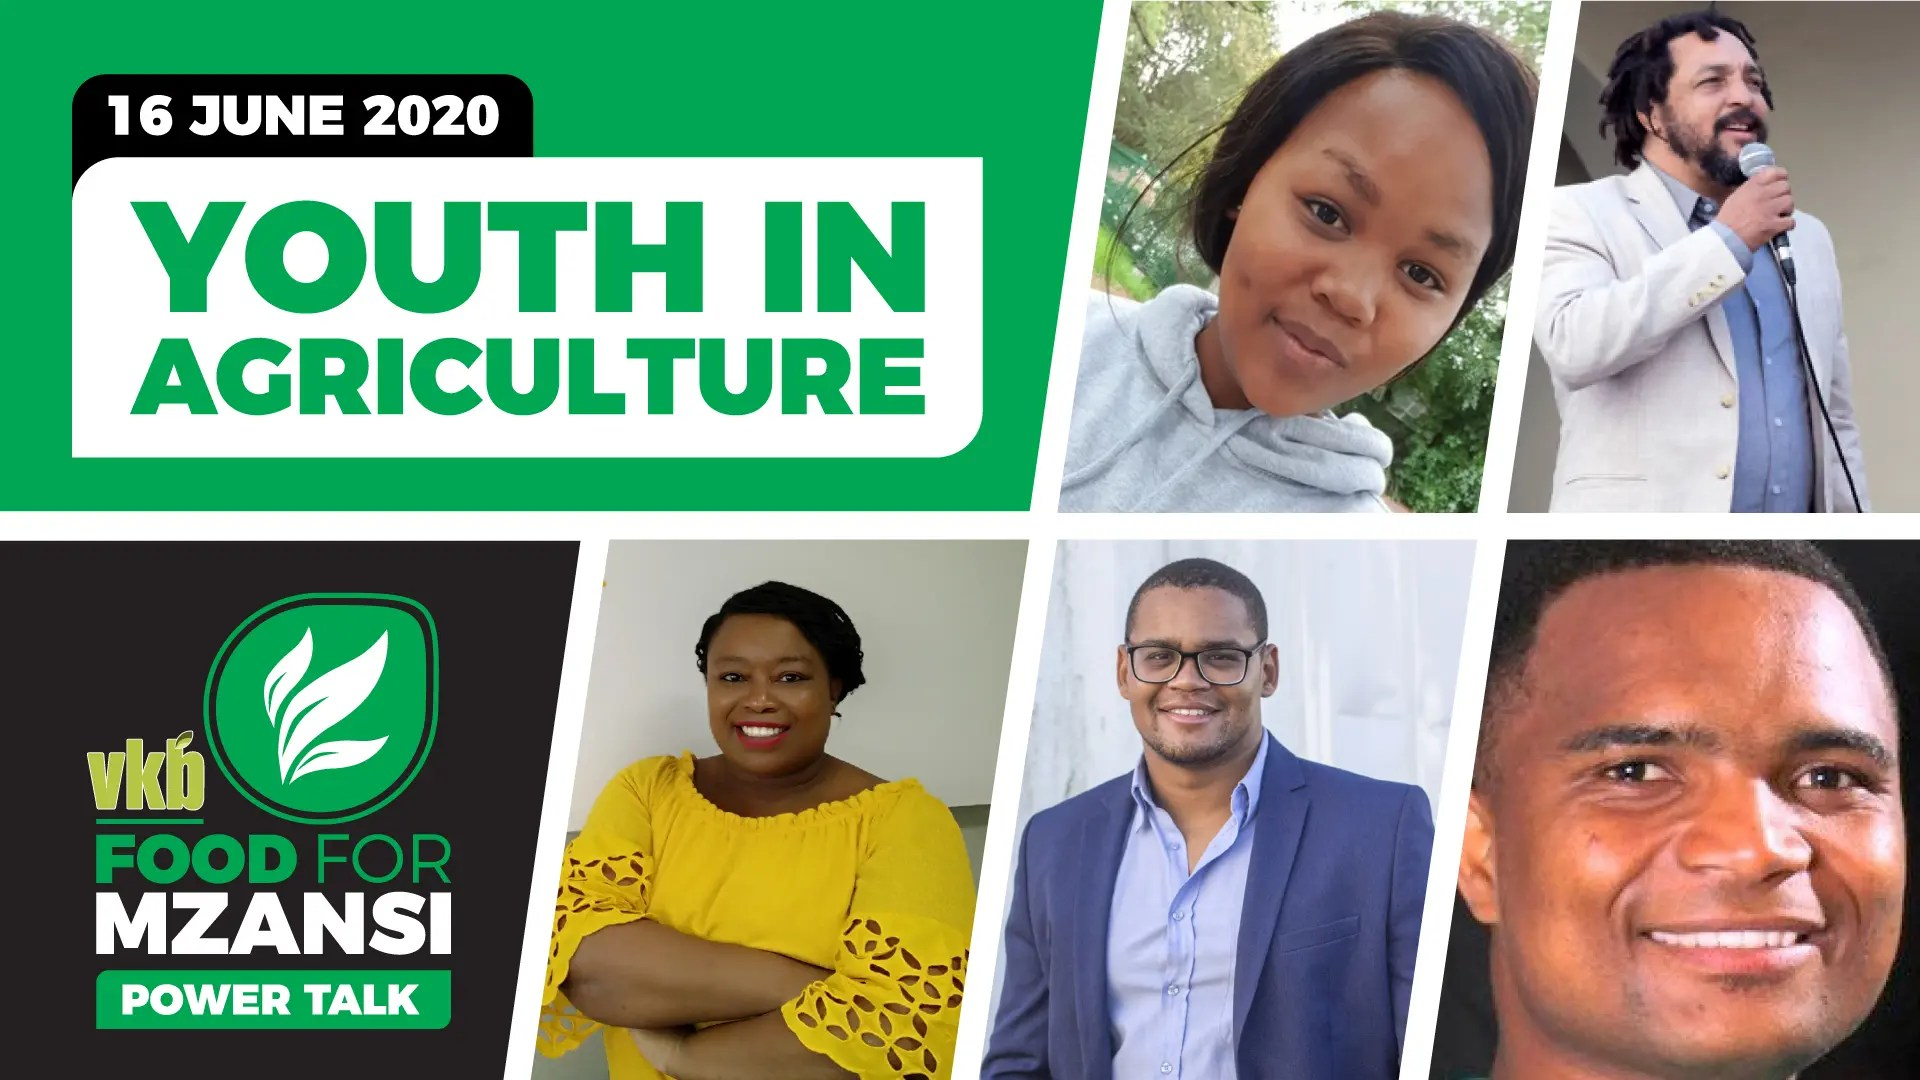 Join the Food For Mzansi National Youth Day webinar featuring some of the brightest young minds in South African agriculture.